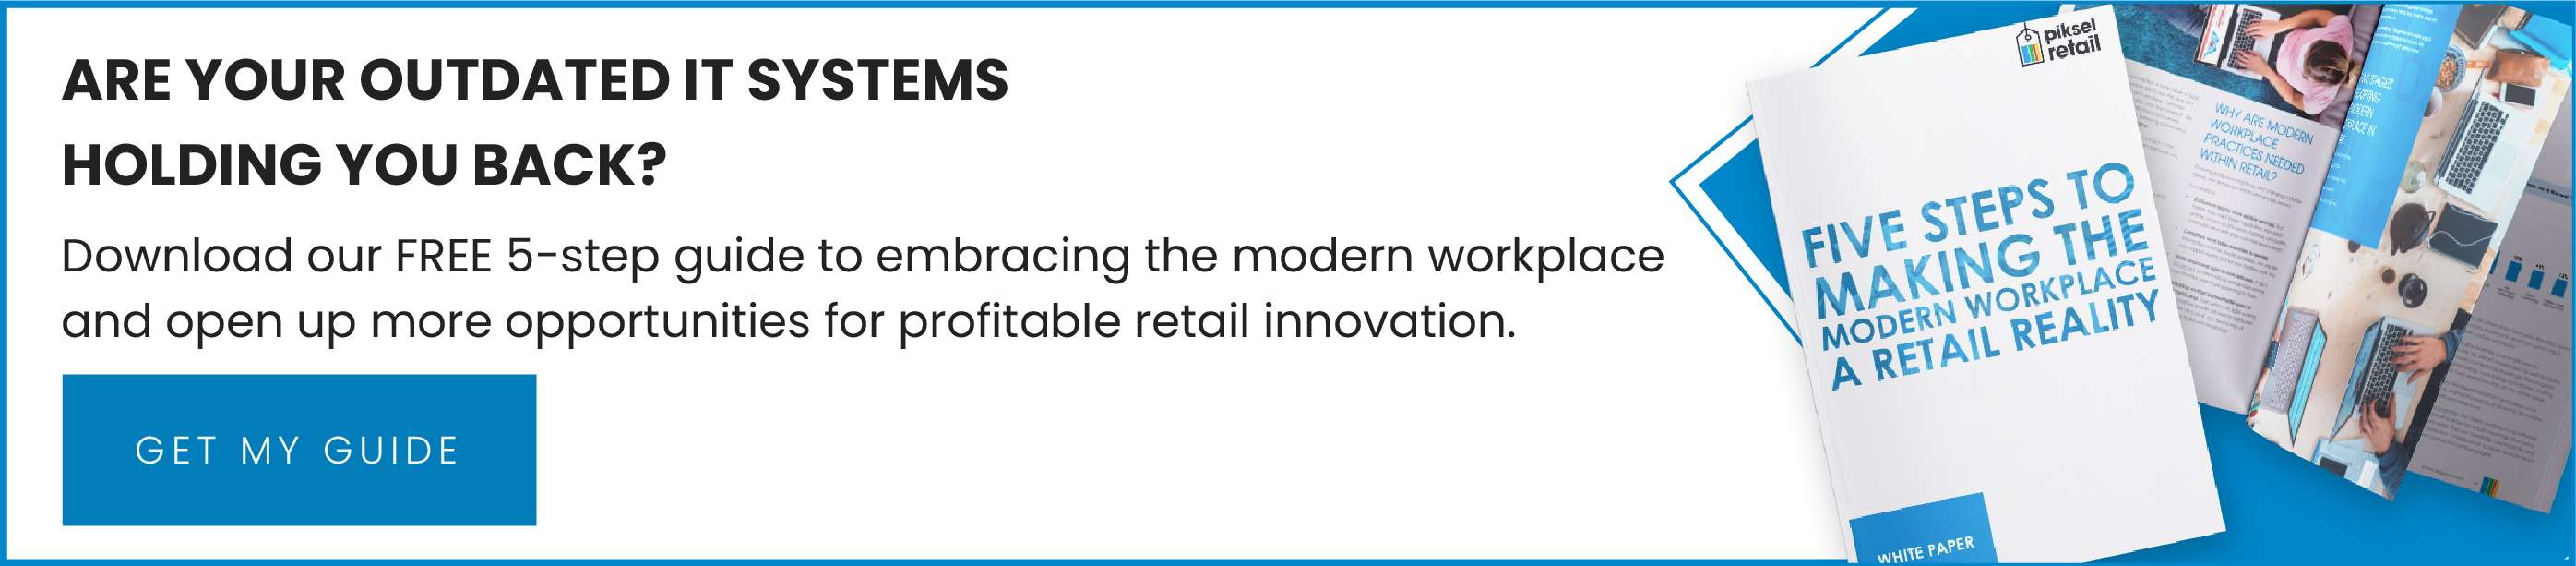 five steps to making the modern workplace a retail reality cta